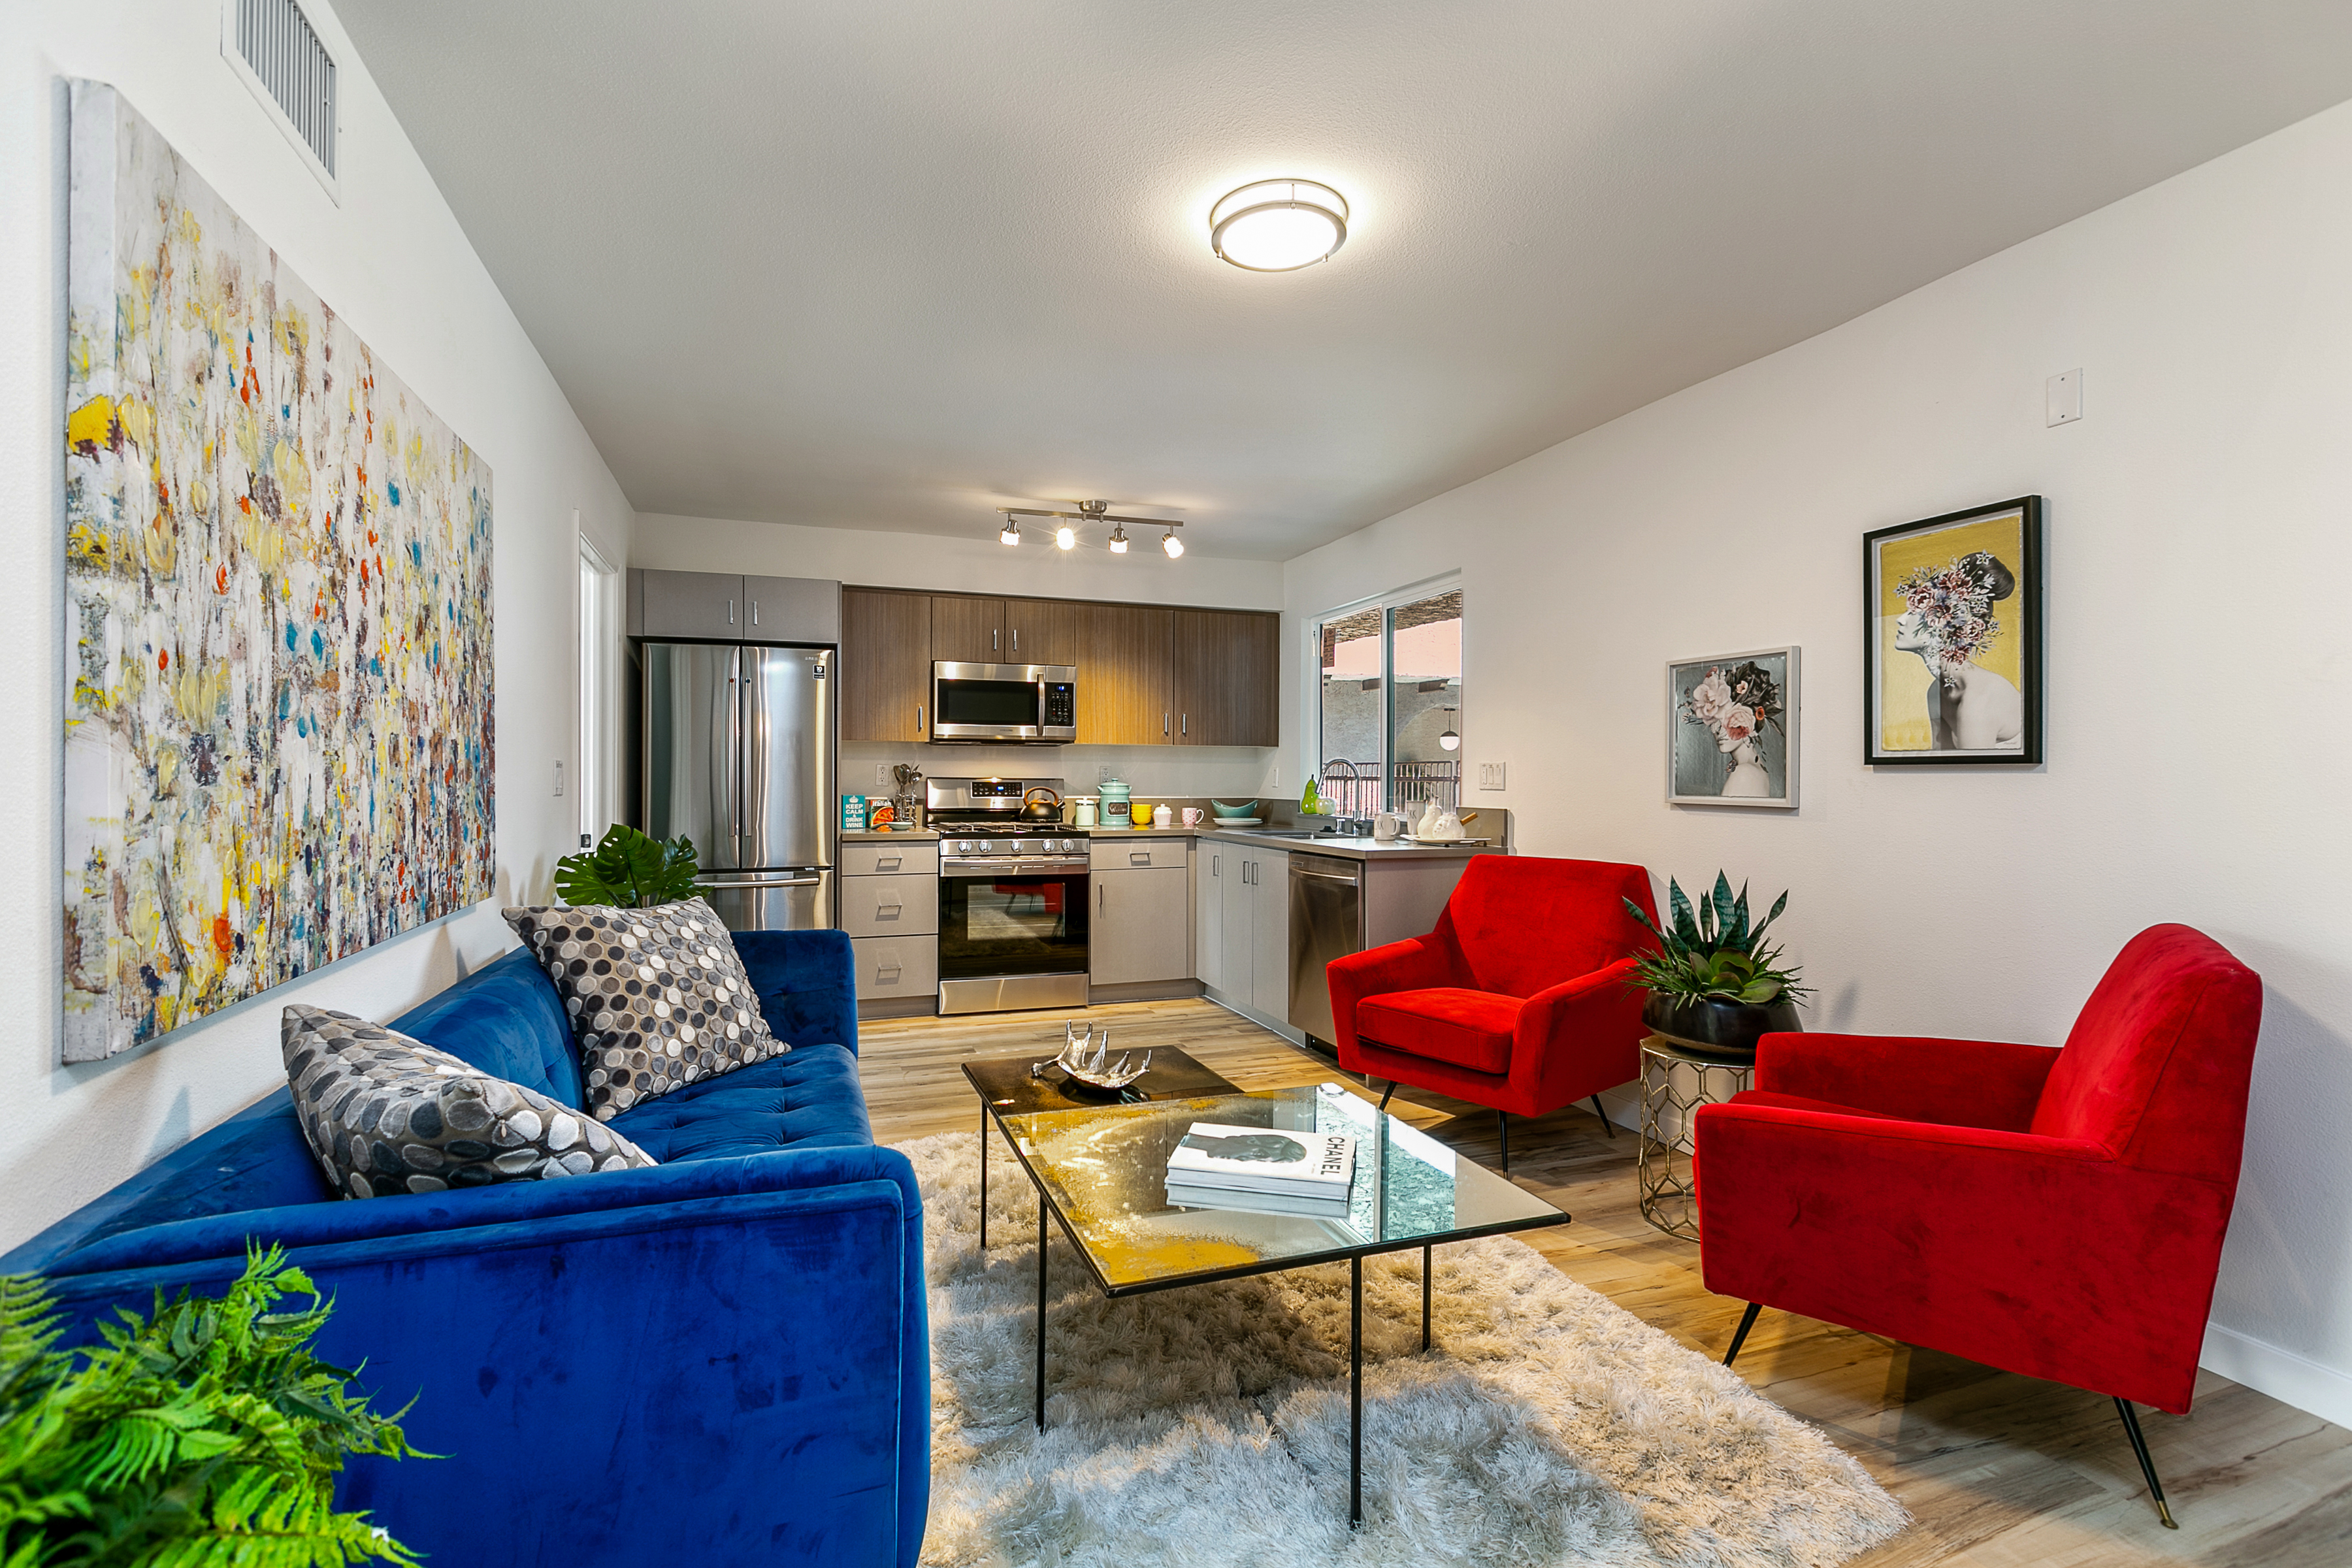 Wonderful Modern Spanish building within close distance to the Orange Line and Balboa Park